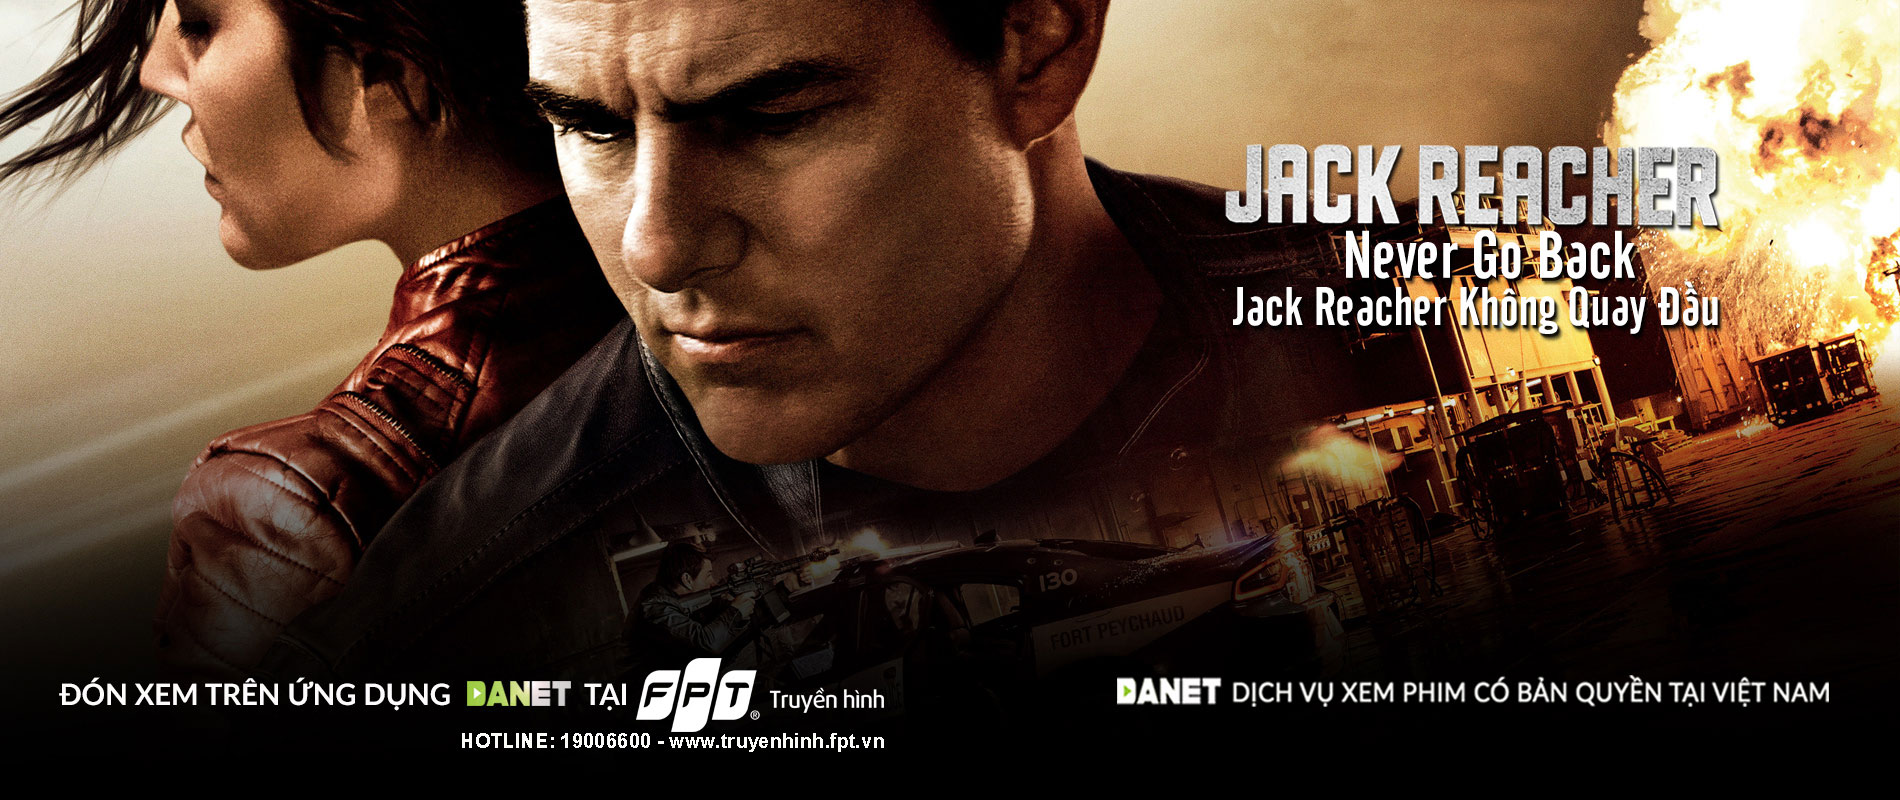 Jack-Reacher-Never-Go-Back1900x800px-1